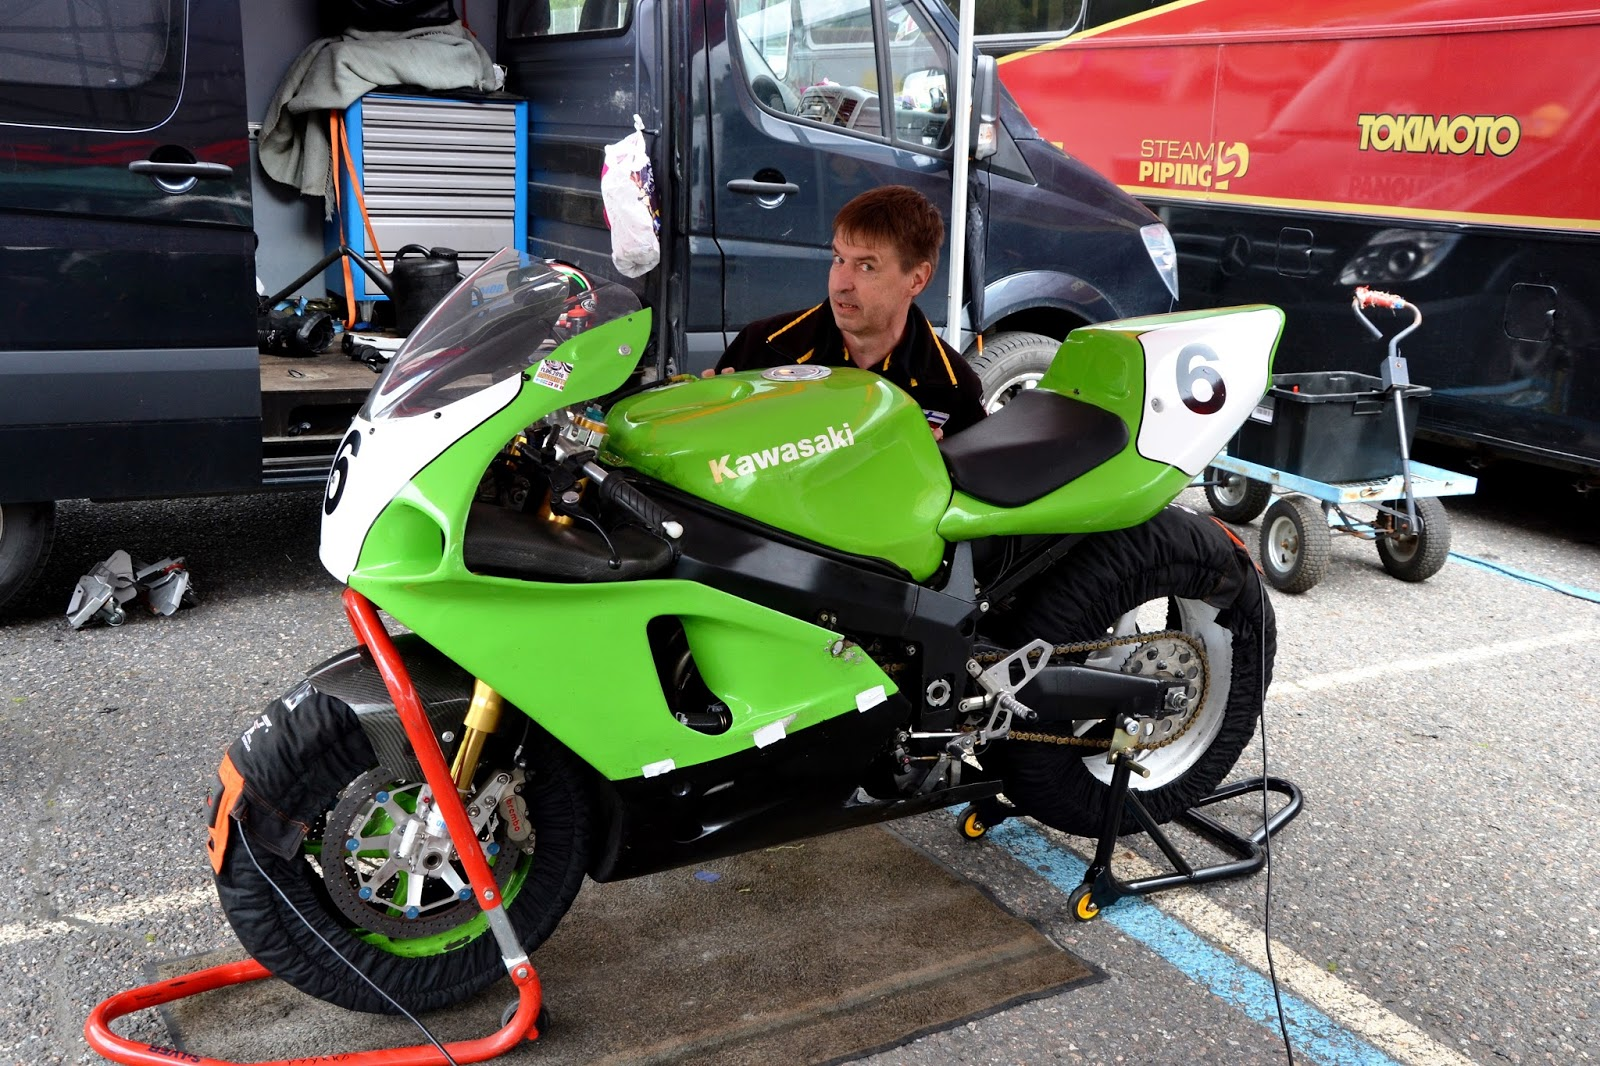 Motorcycle Mechanic Evening Course